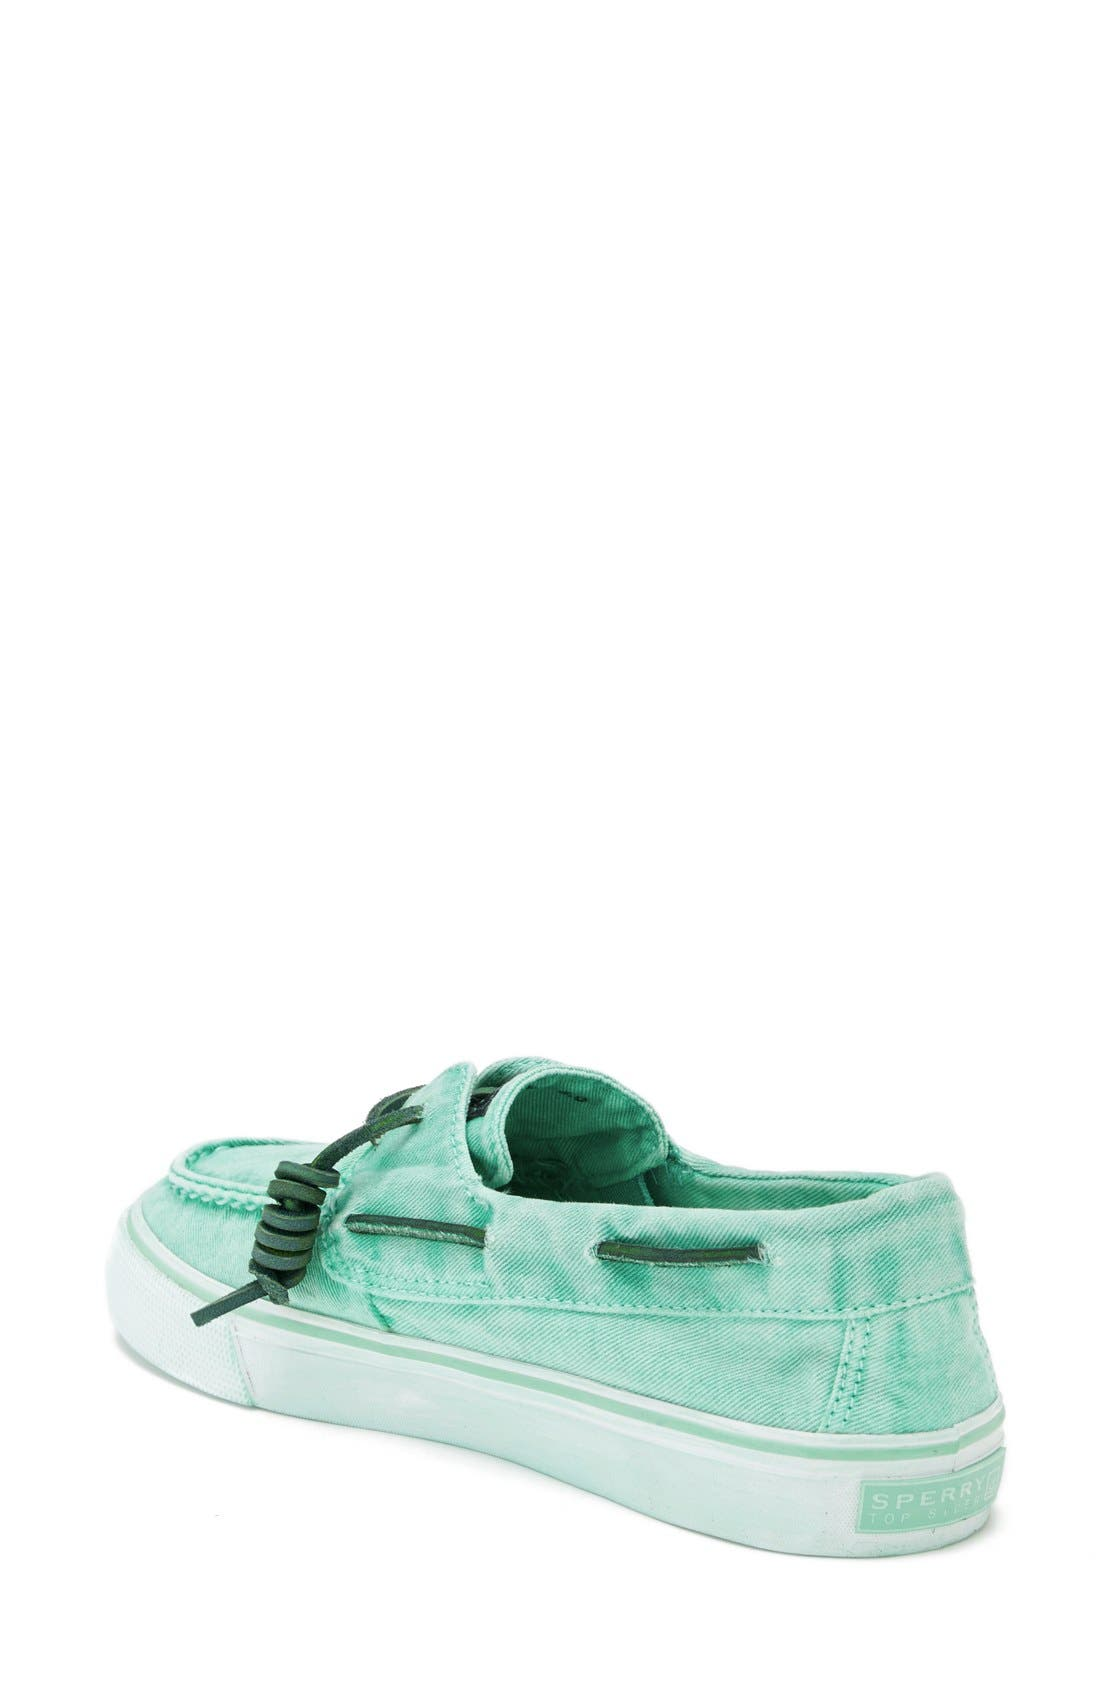 Top-Sider<sup>®</sup> 'Bahama' Sequined Boat Shoe,                             Alternate thumbnail 61, color,